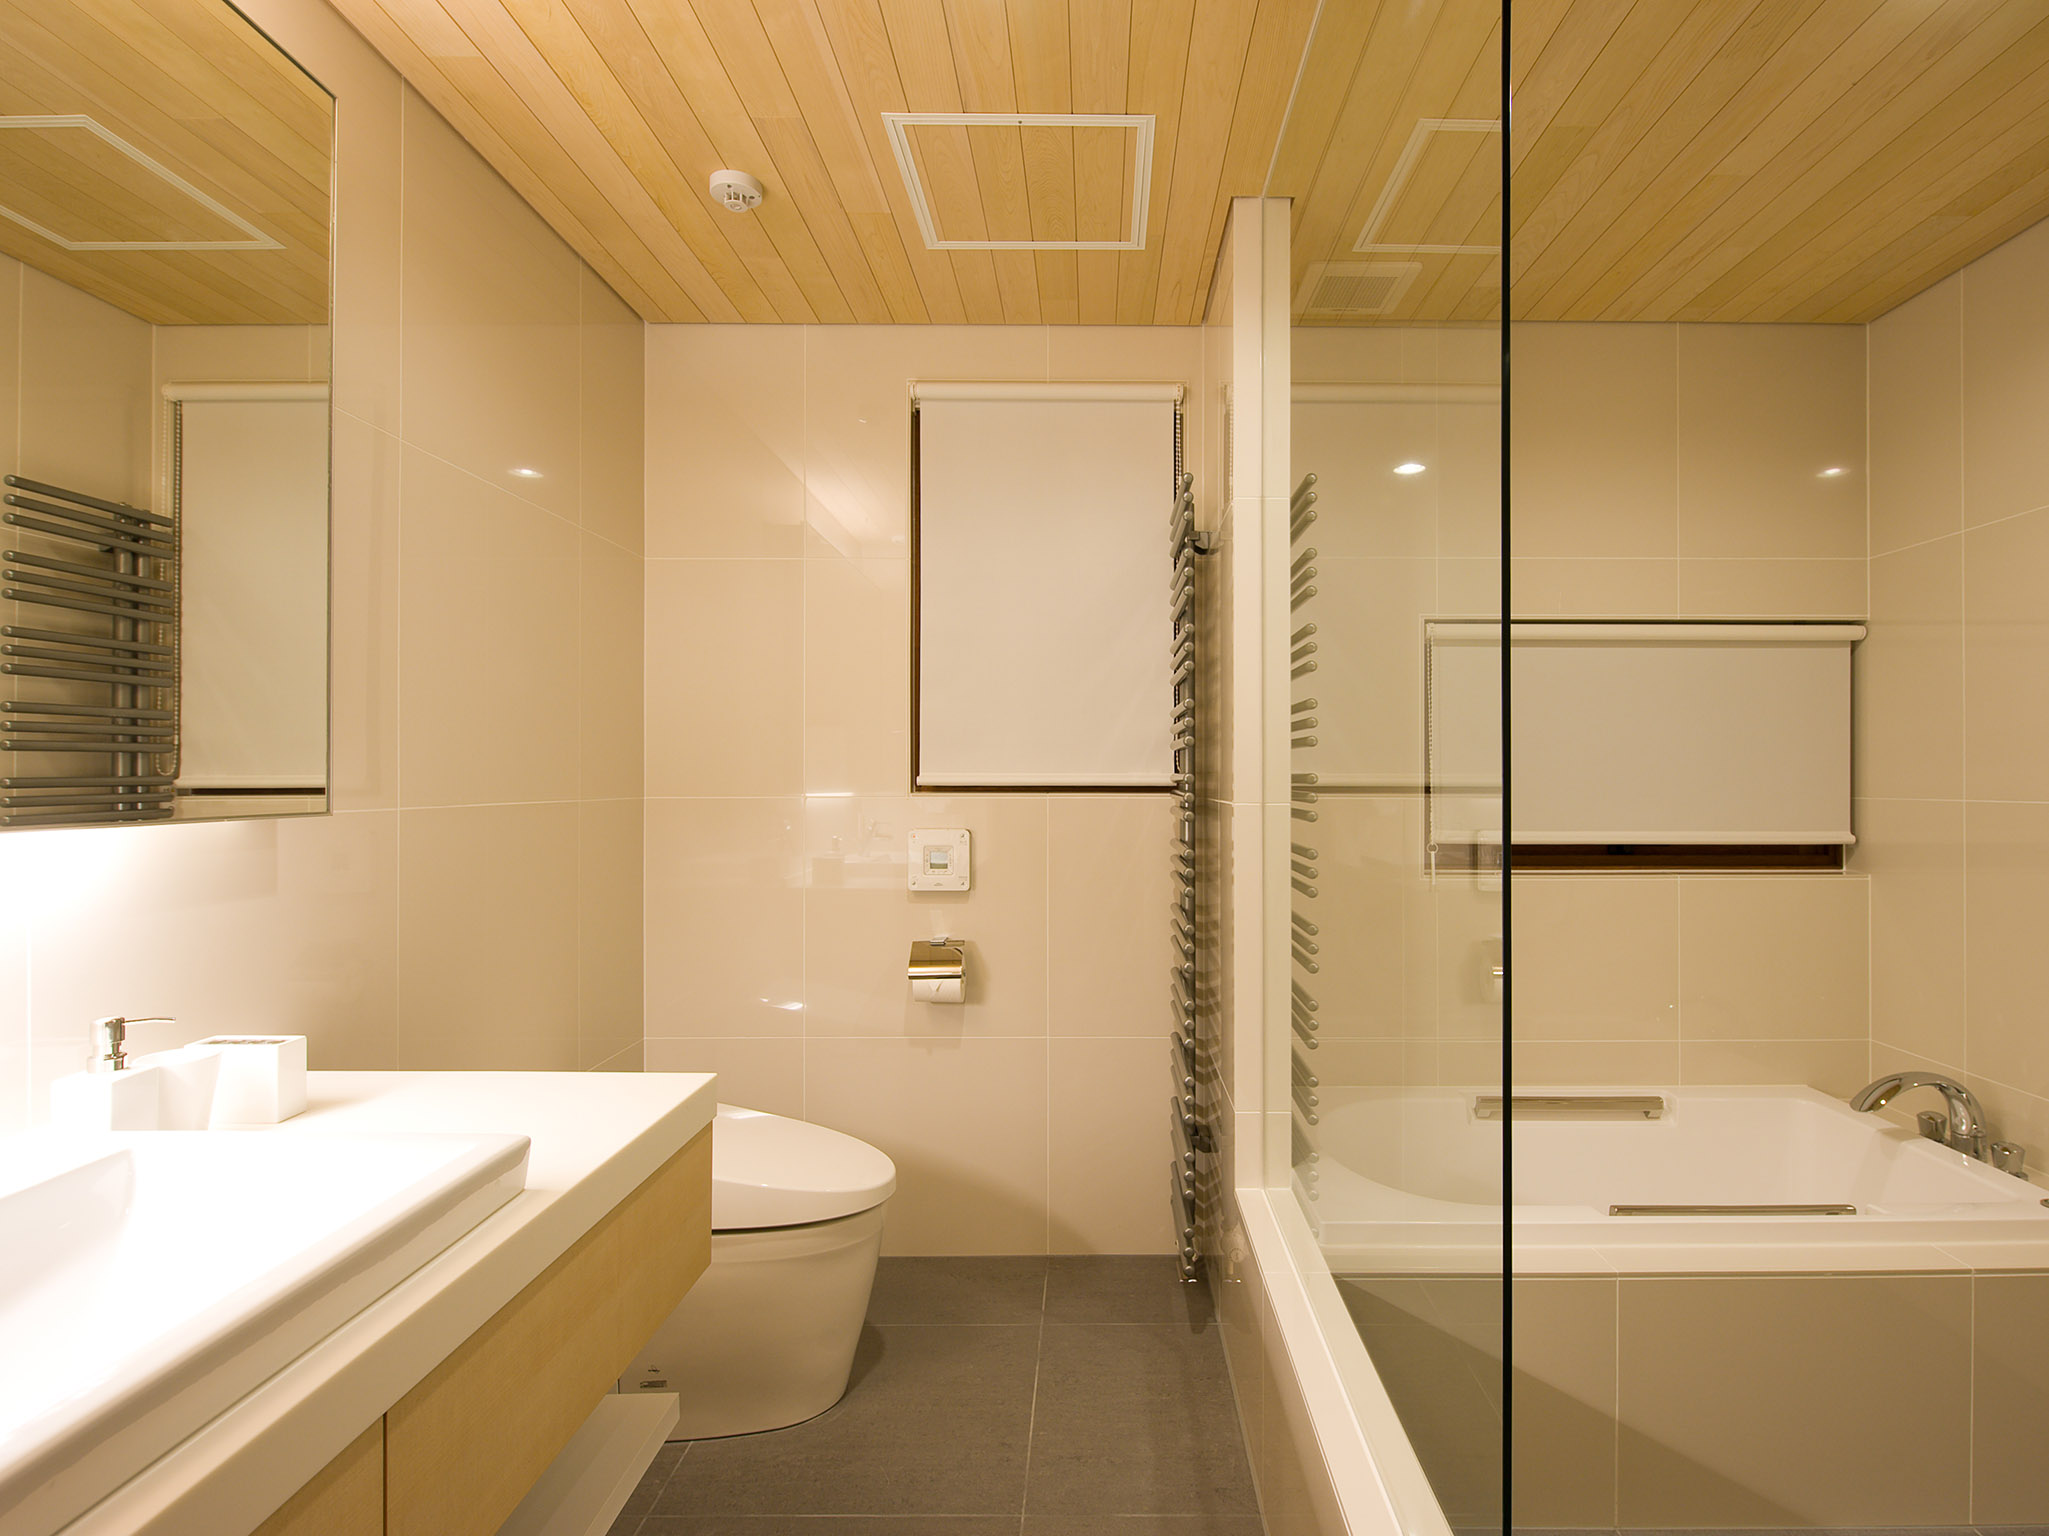 Seshu - Ensuite bathroom preview